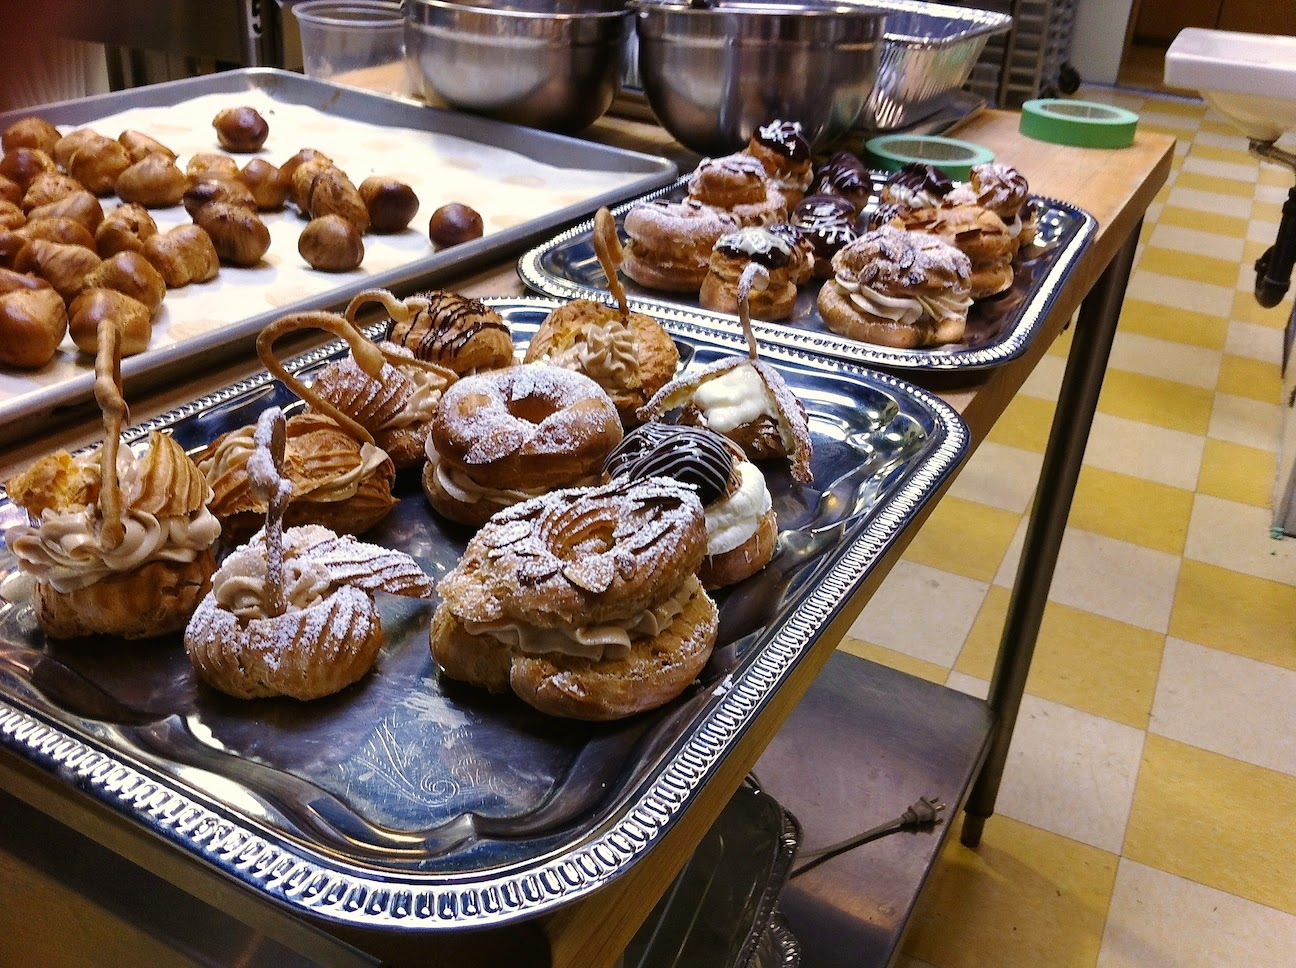 Various baked goods in the pastry kitchen.